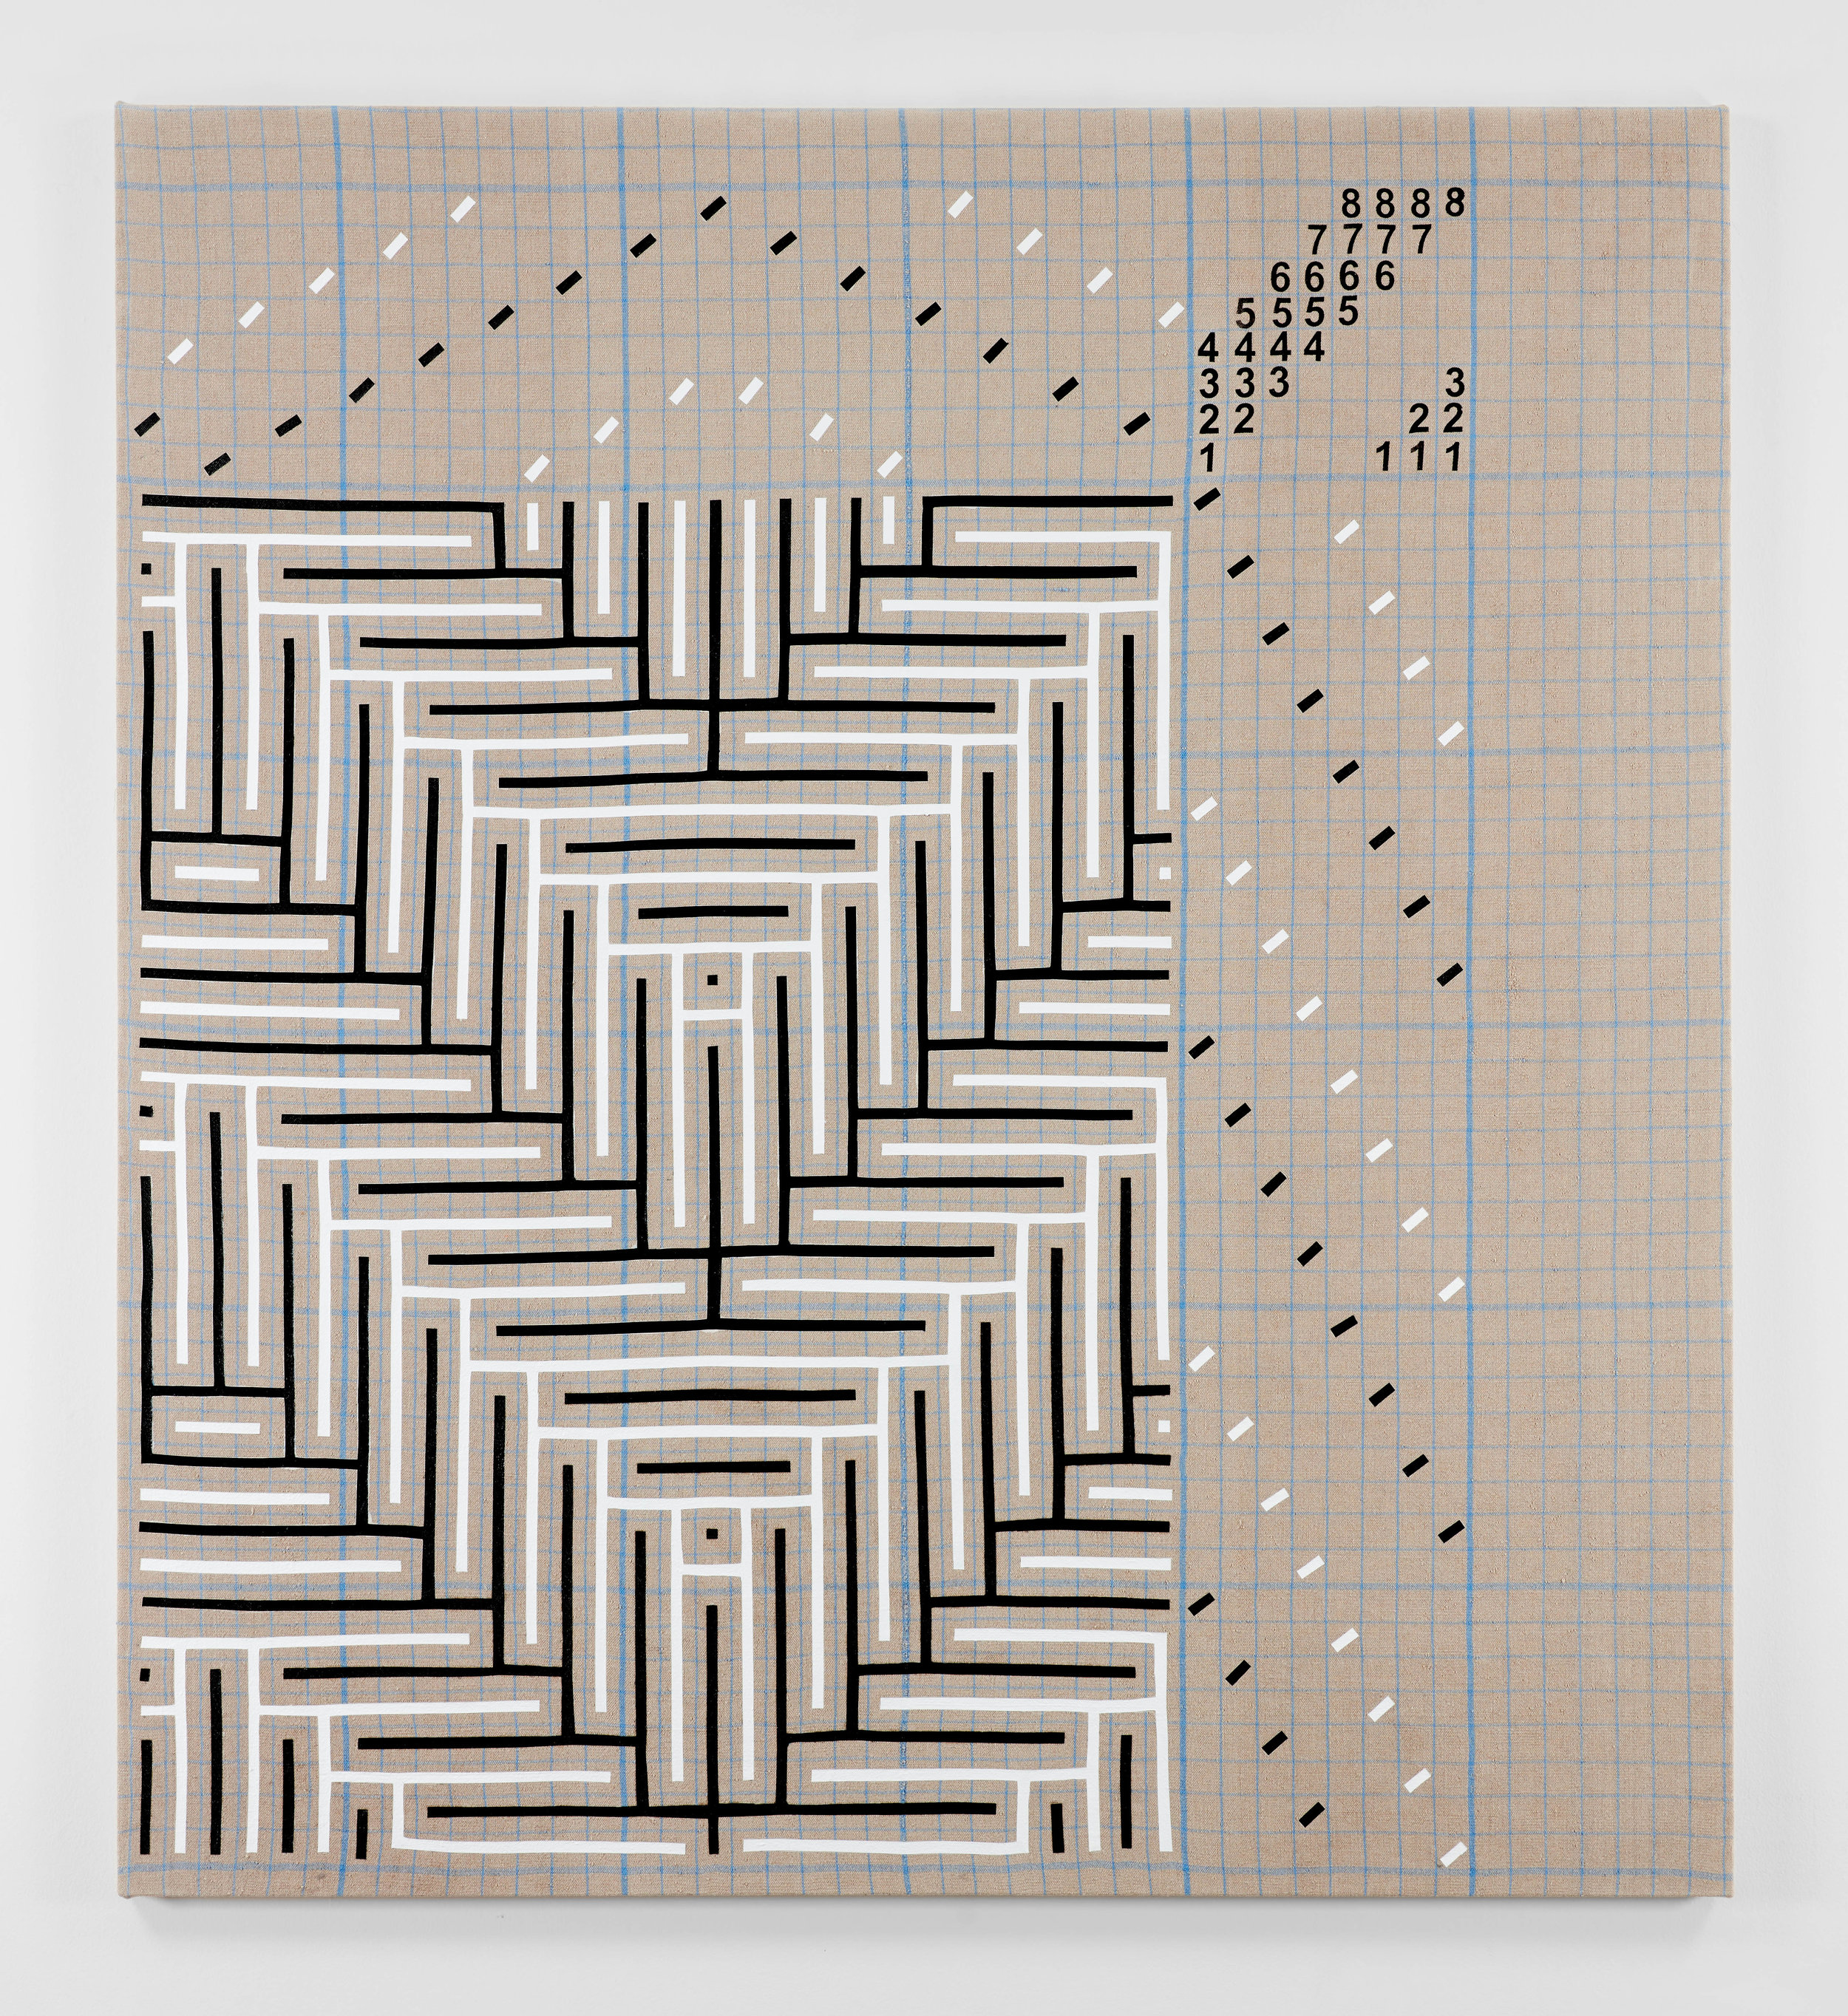 Black and White Shadow Weave Draft Graph, 2016  acrylic on plain weave woven 16/2 linen  82 x 74 in (208,3 x 188 cm)